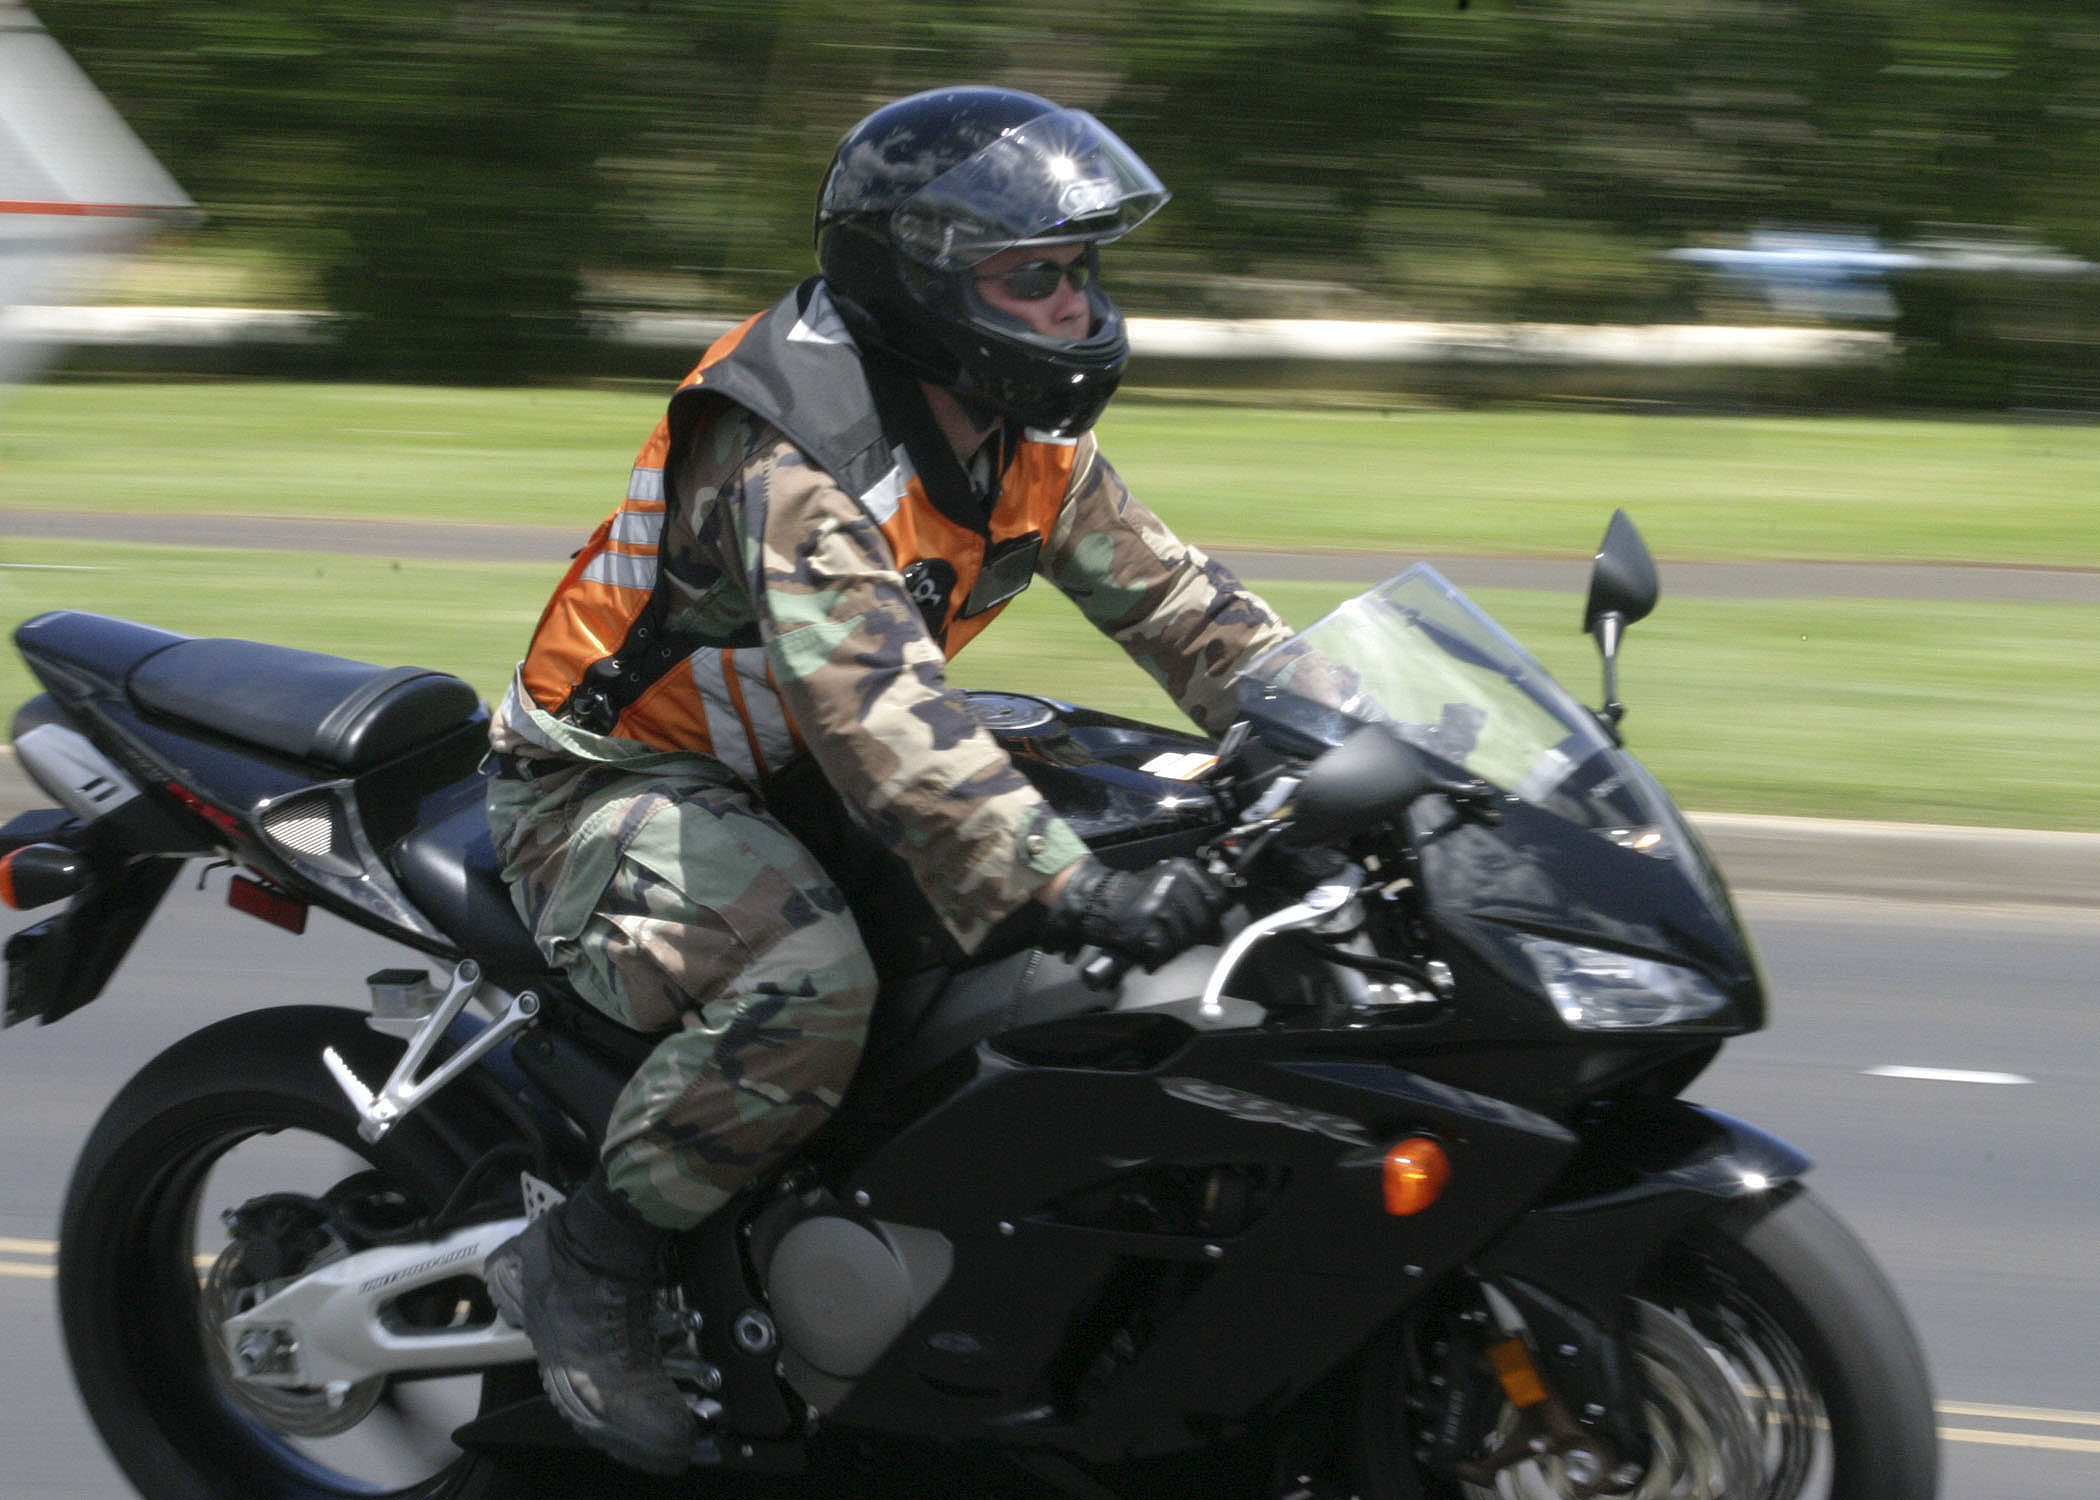 Motorcycle gloves pink - File Us Navy 050804 N 0879r 001 A Sailor Rides His Motorcycle On Board